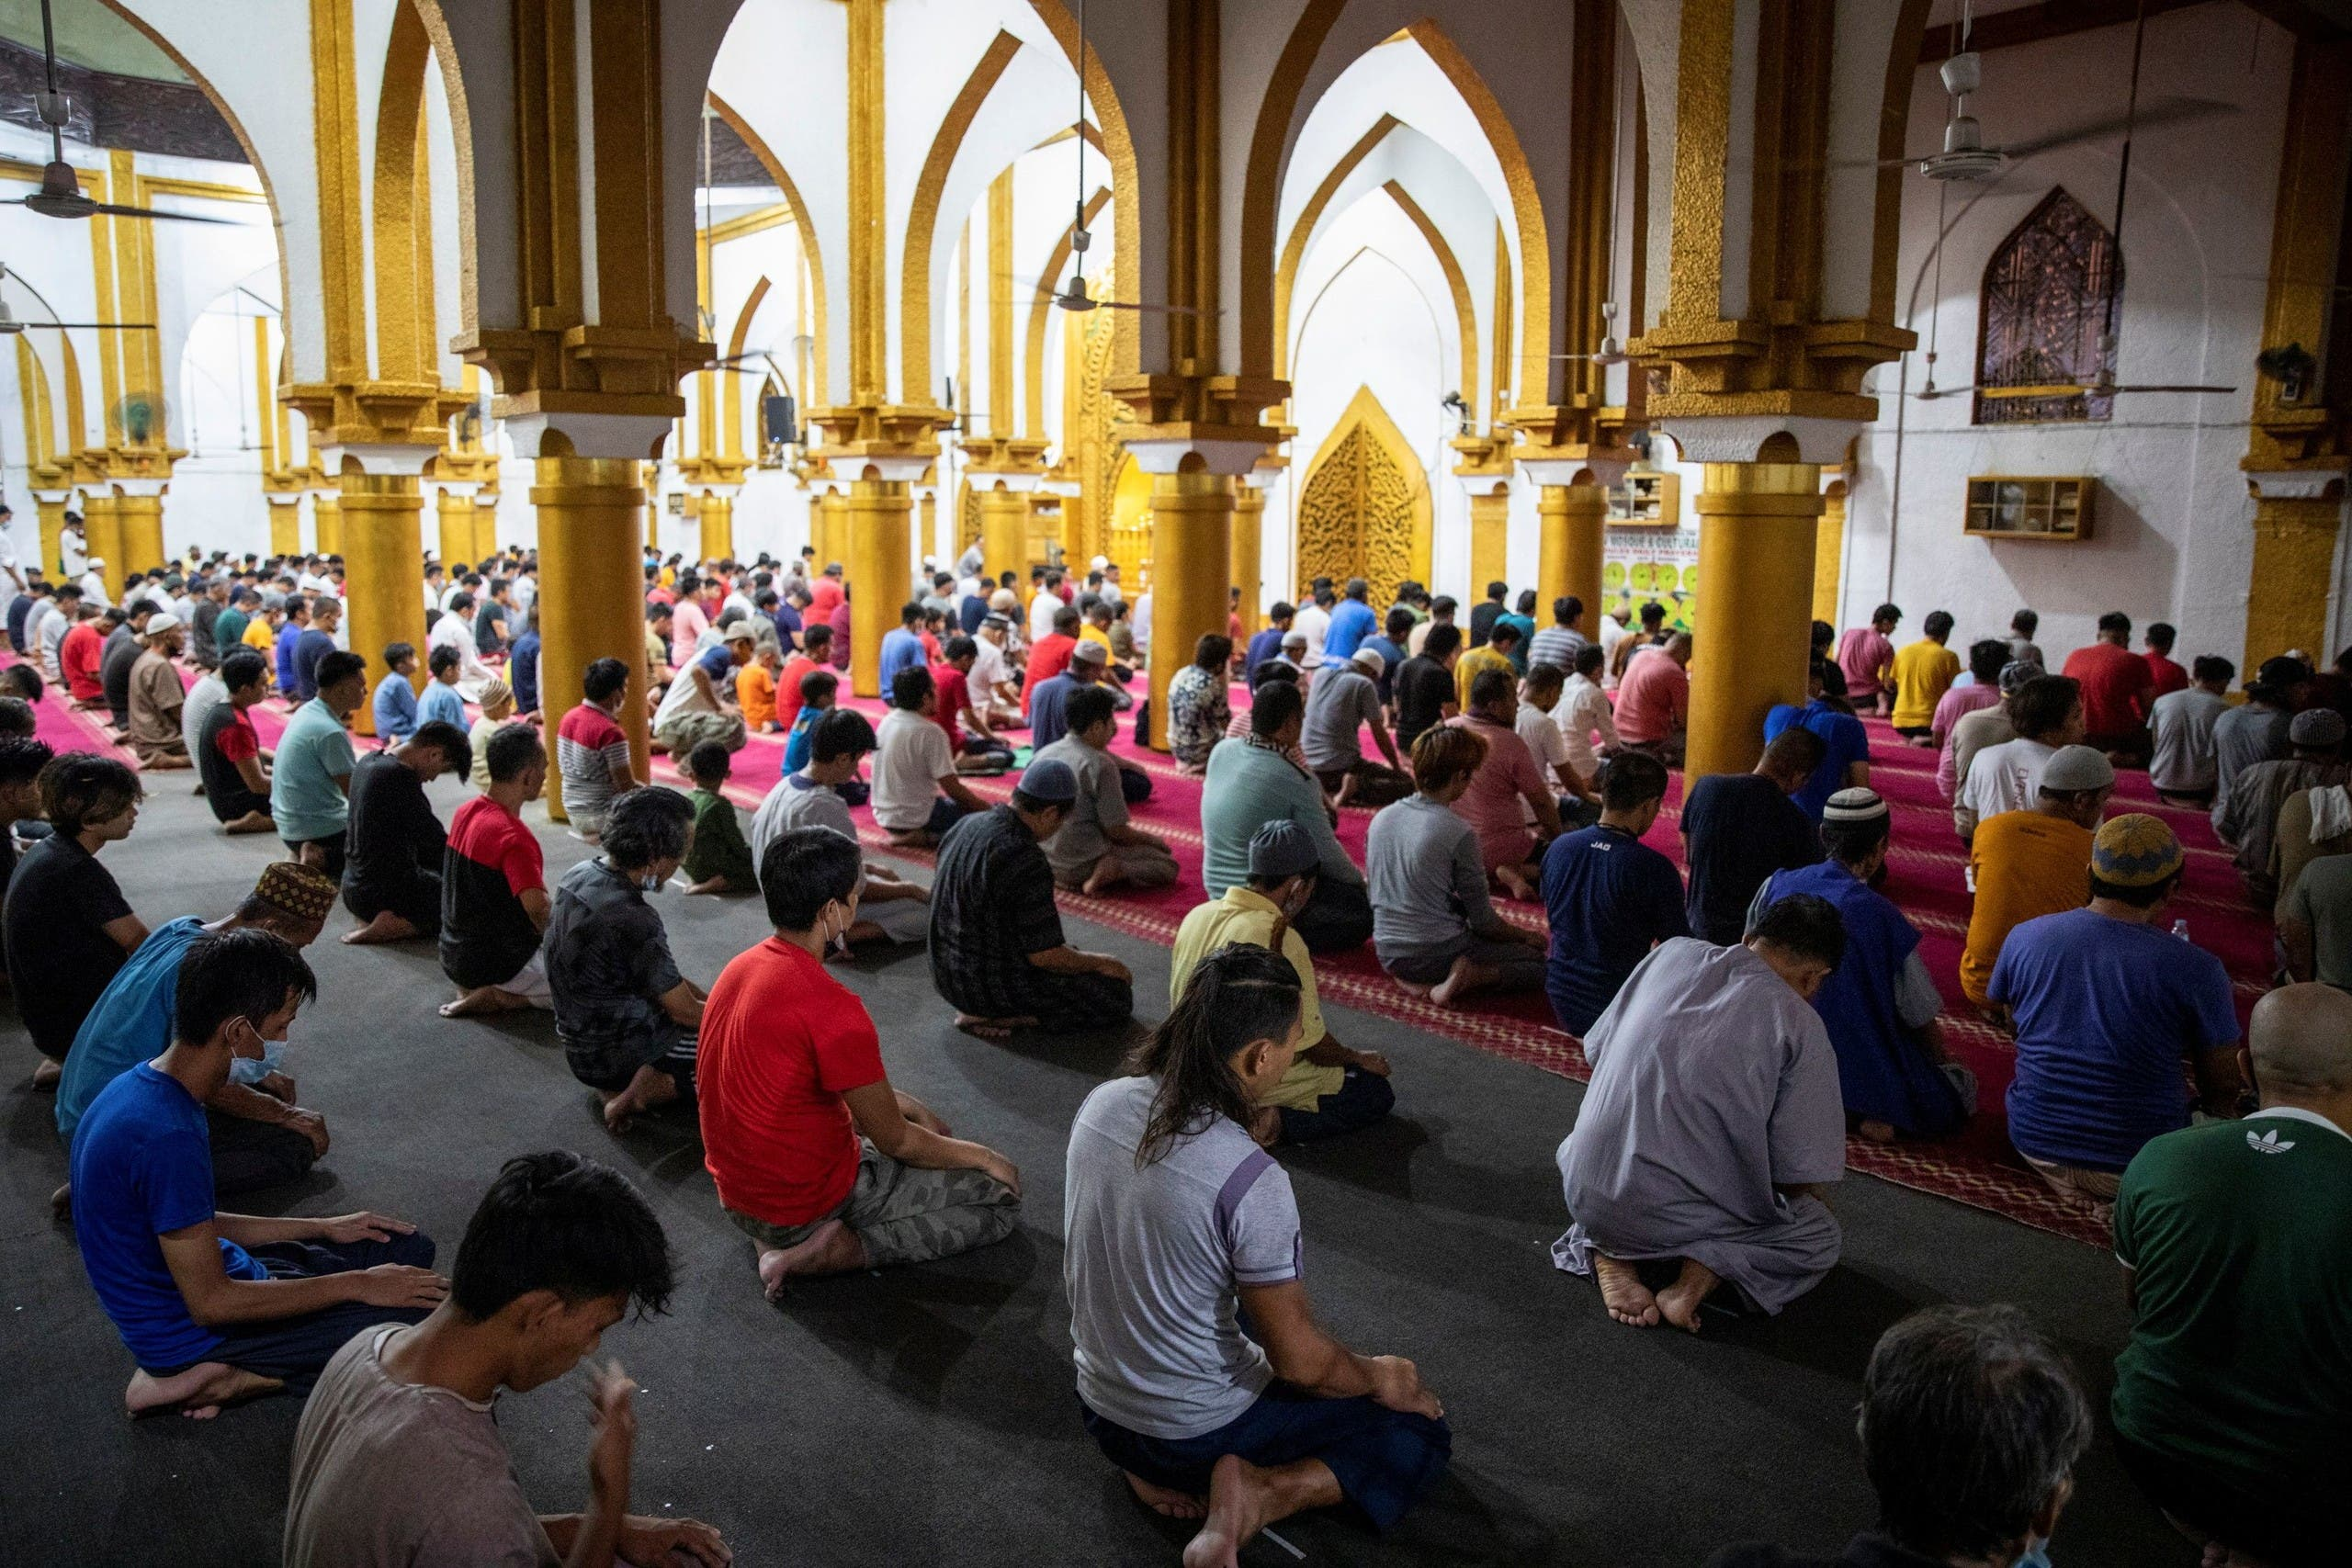 Filipino Muslim men attend prayers on the first day of Ramadan, amid the coronavirus disease (COVID-19) pandemic, at the Golden Mosque in Quiapo, Manila, Philippines. (Reuters)